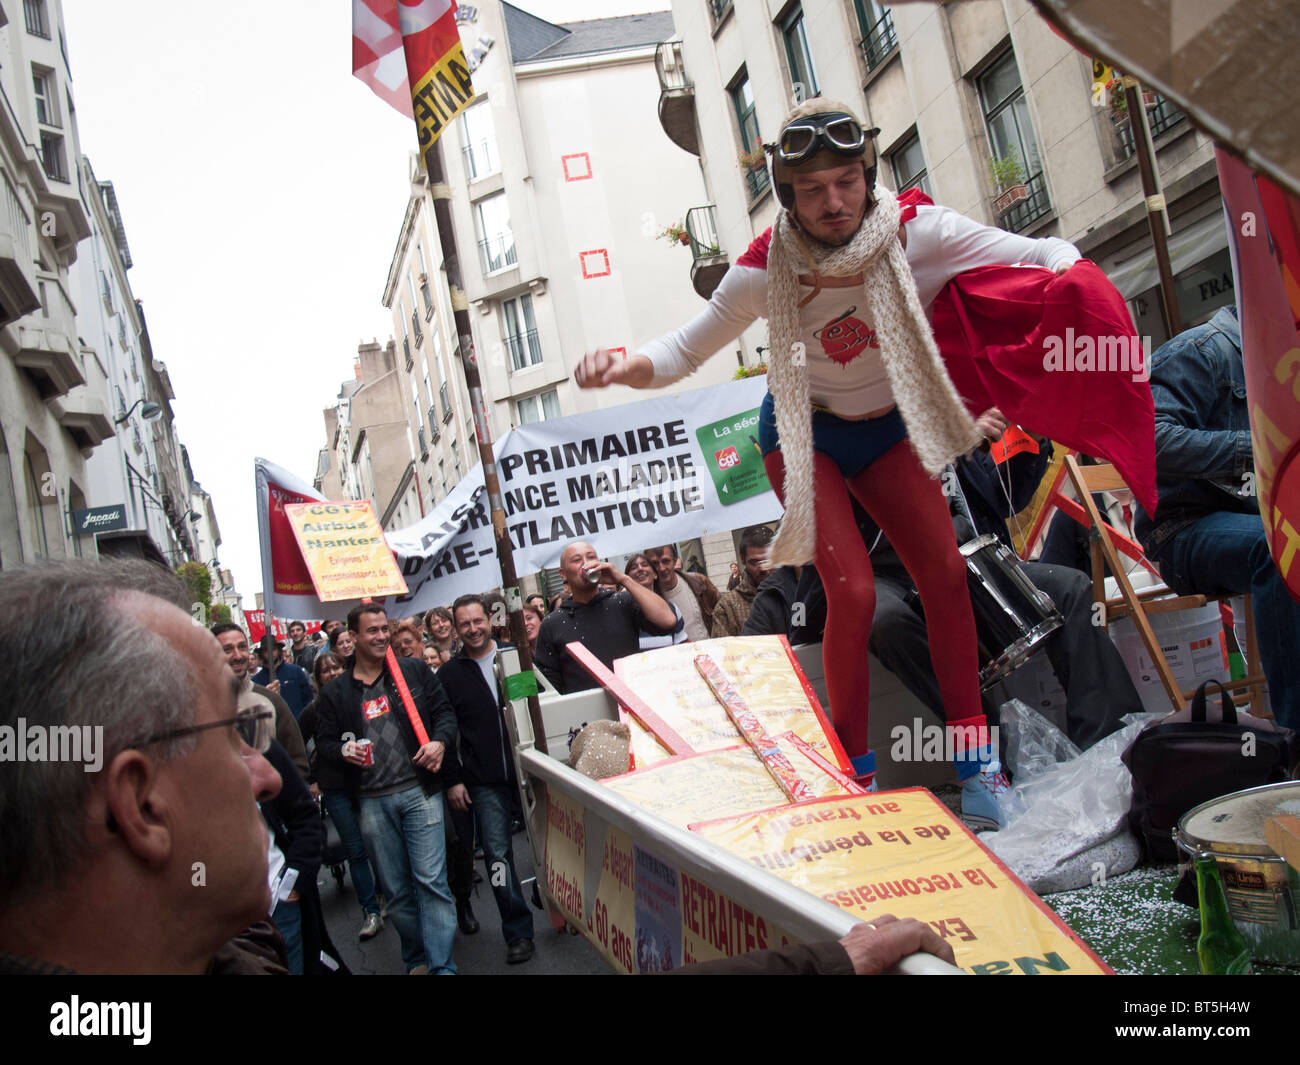 Jacadi Grenoble People Take Part In A Demonstration Over Pension Reform In Nantes